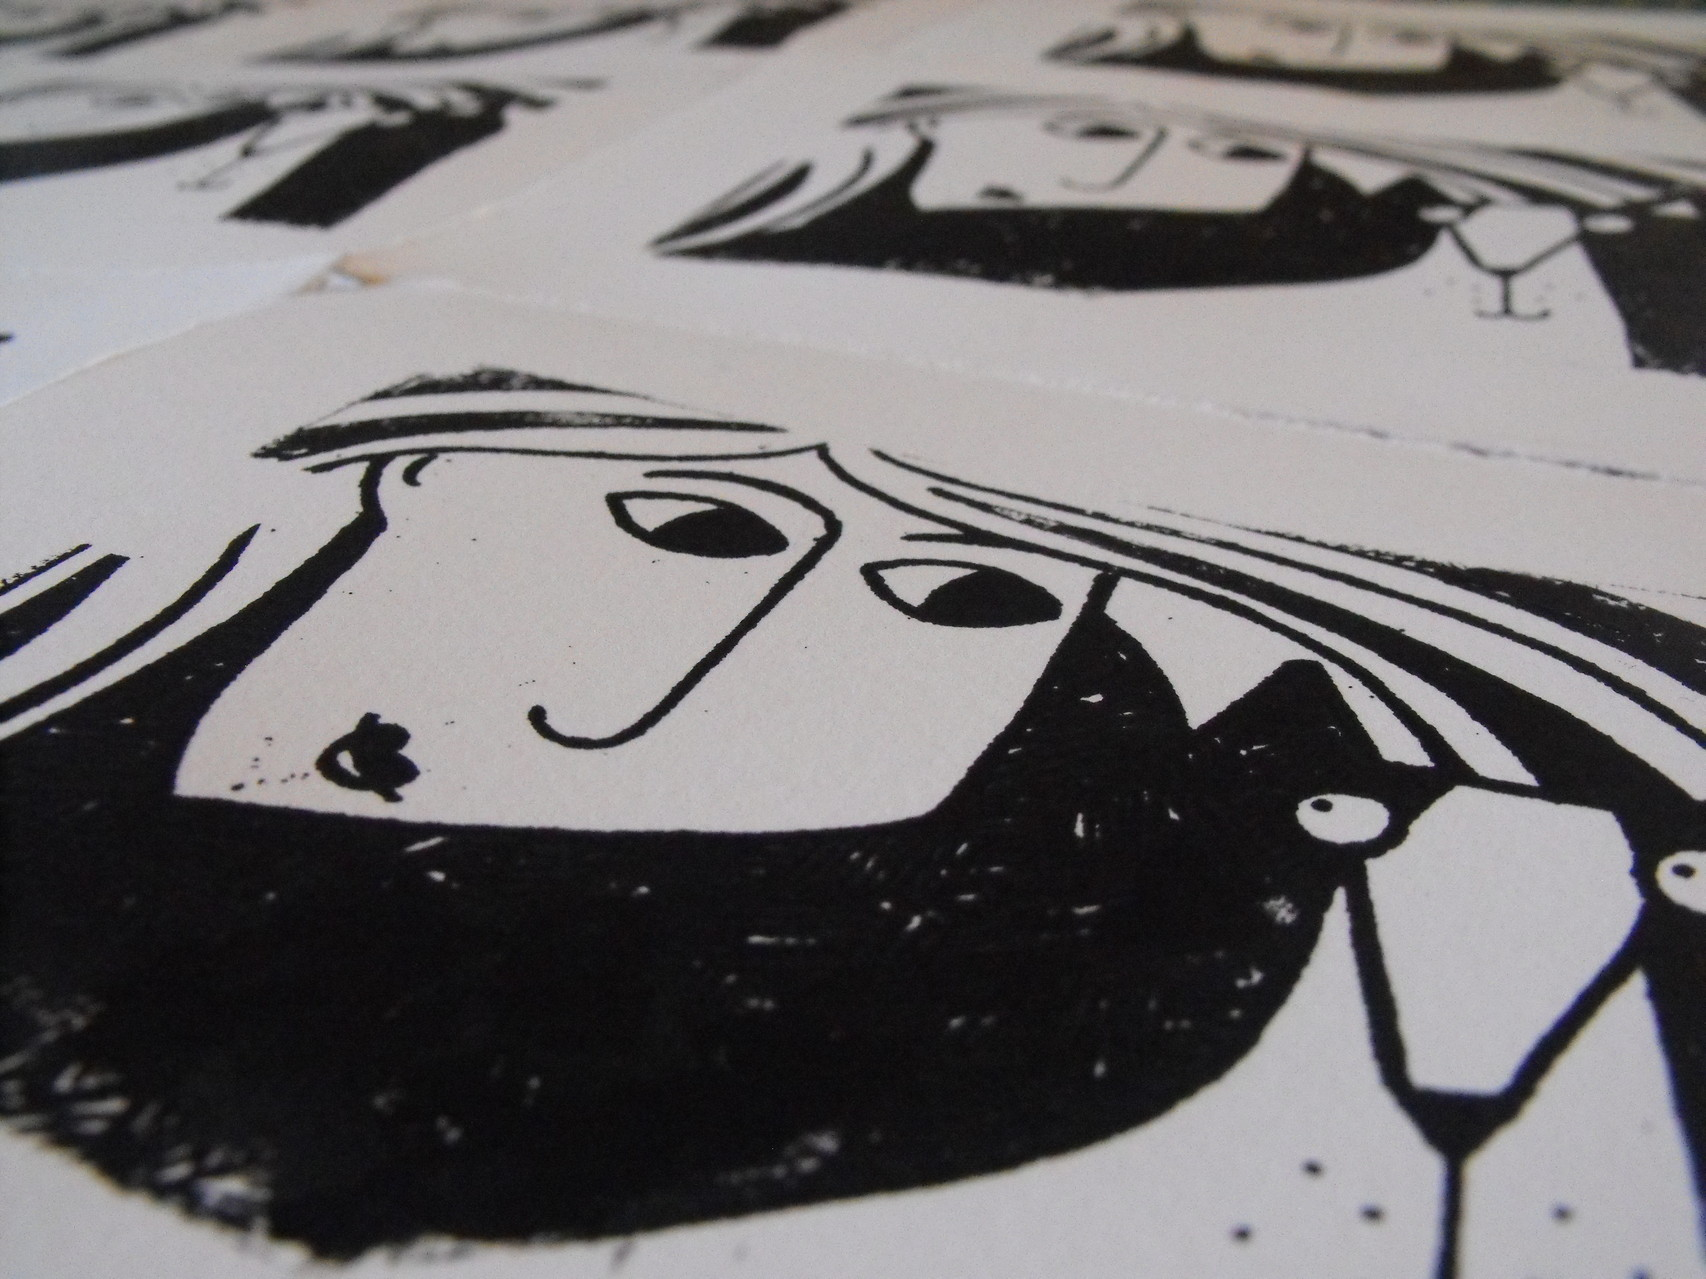 An example of a gocco print shown at a printmaking workshop